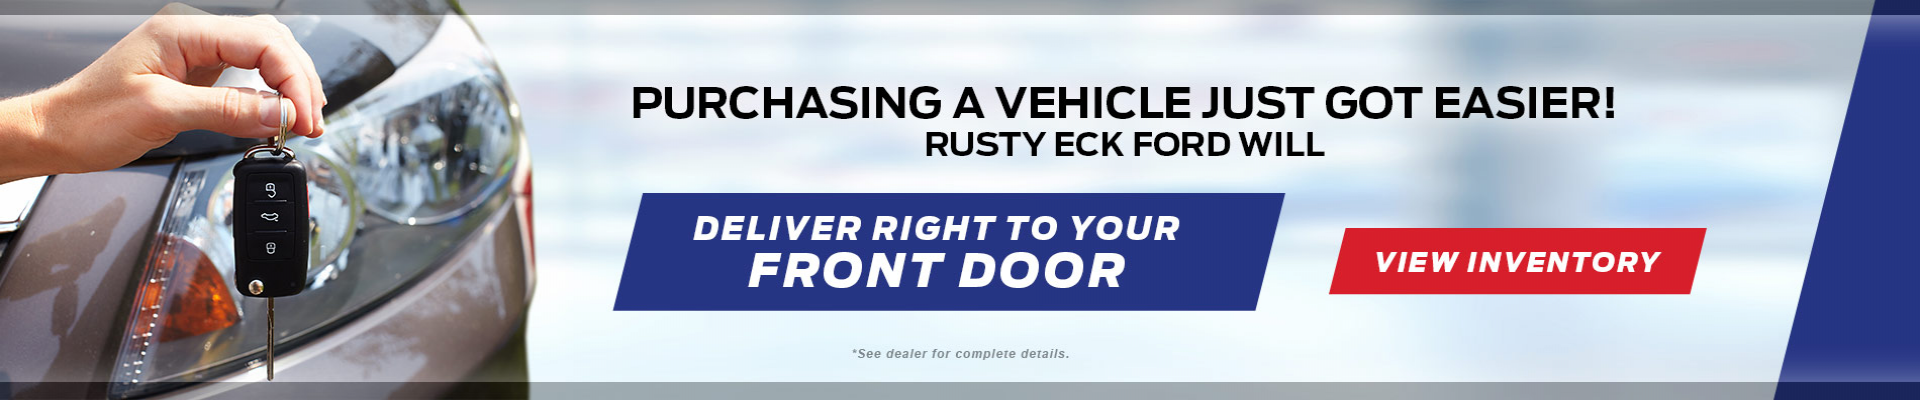 Purchasing just got easier at Rusty Eck Ford